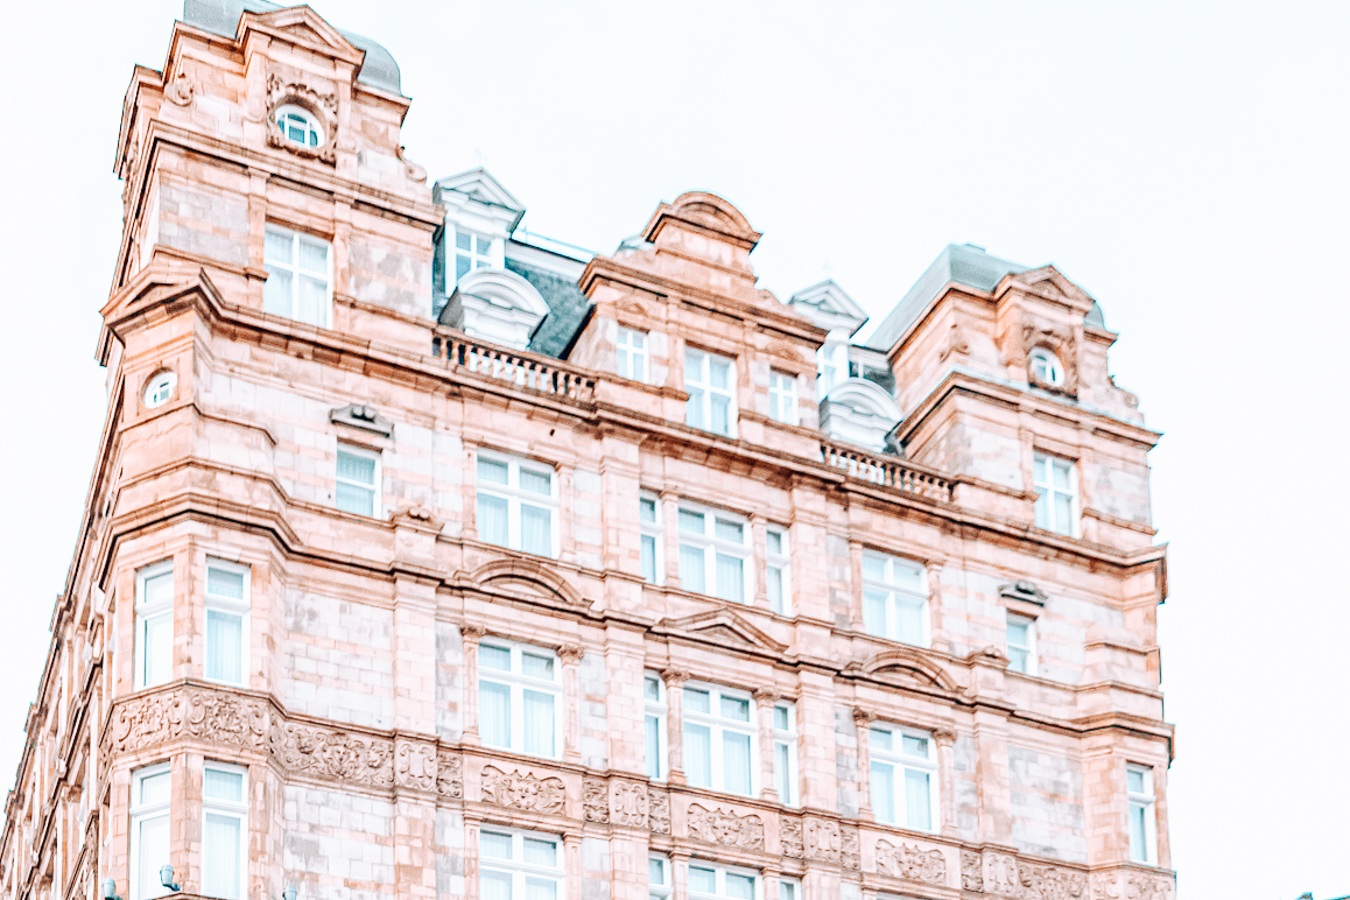 Building on Leicester Square